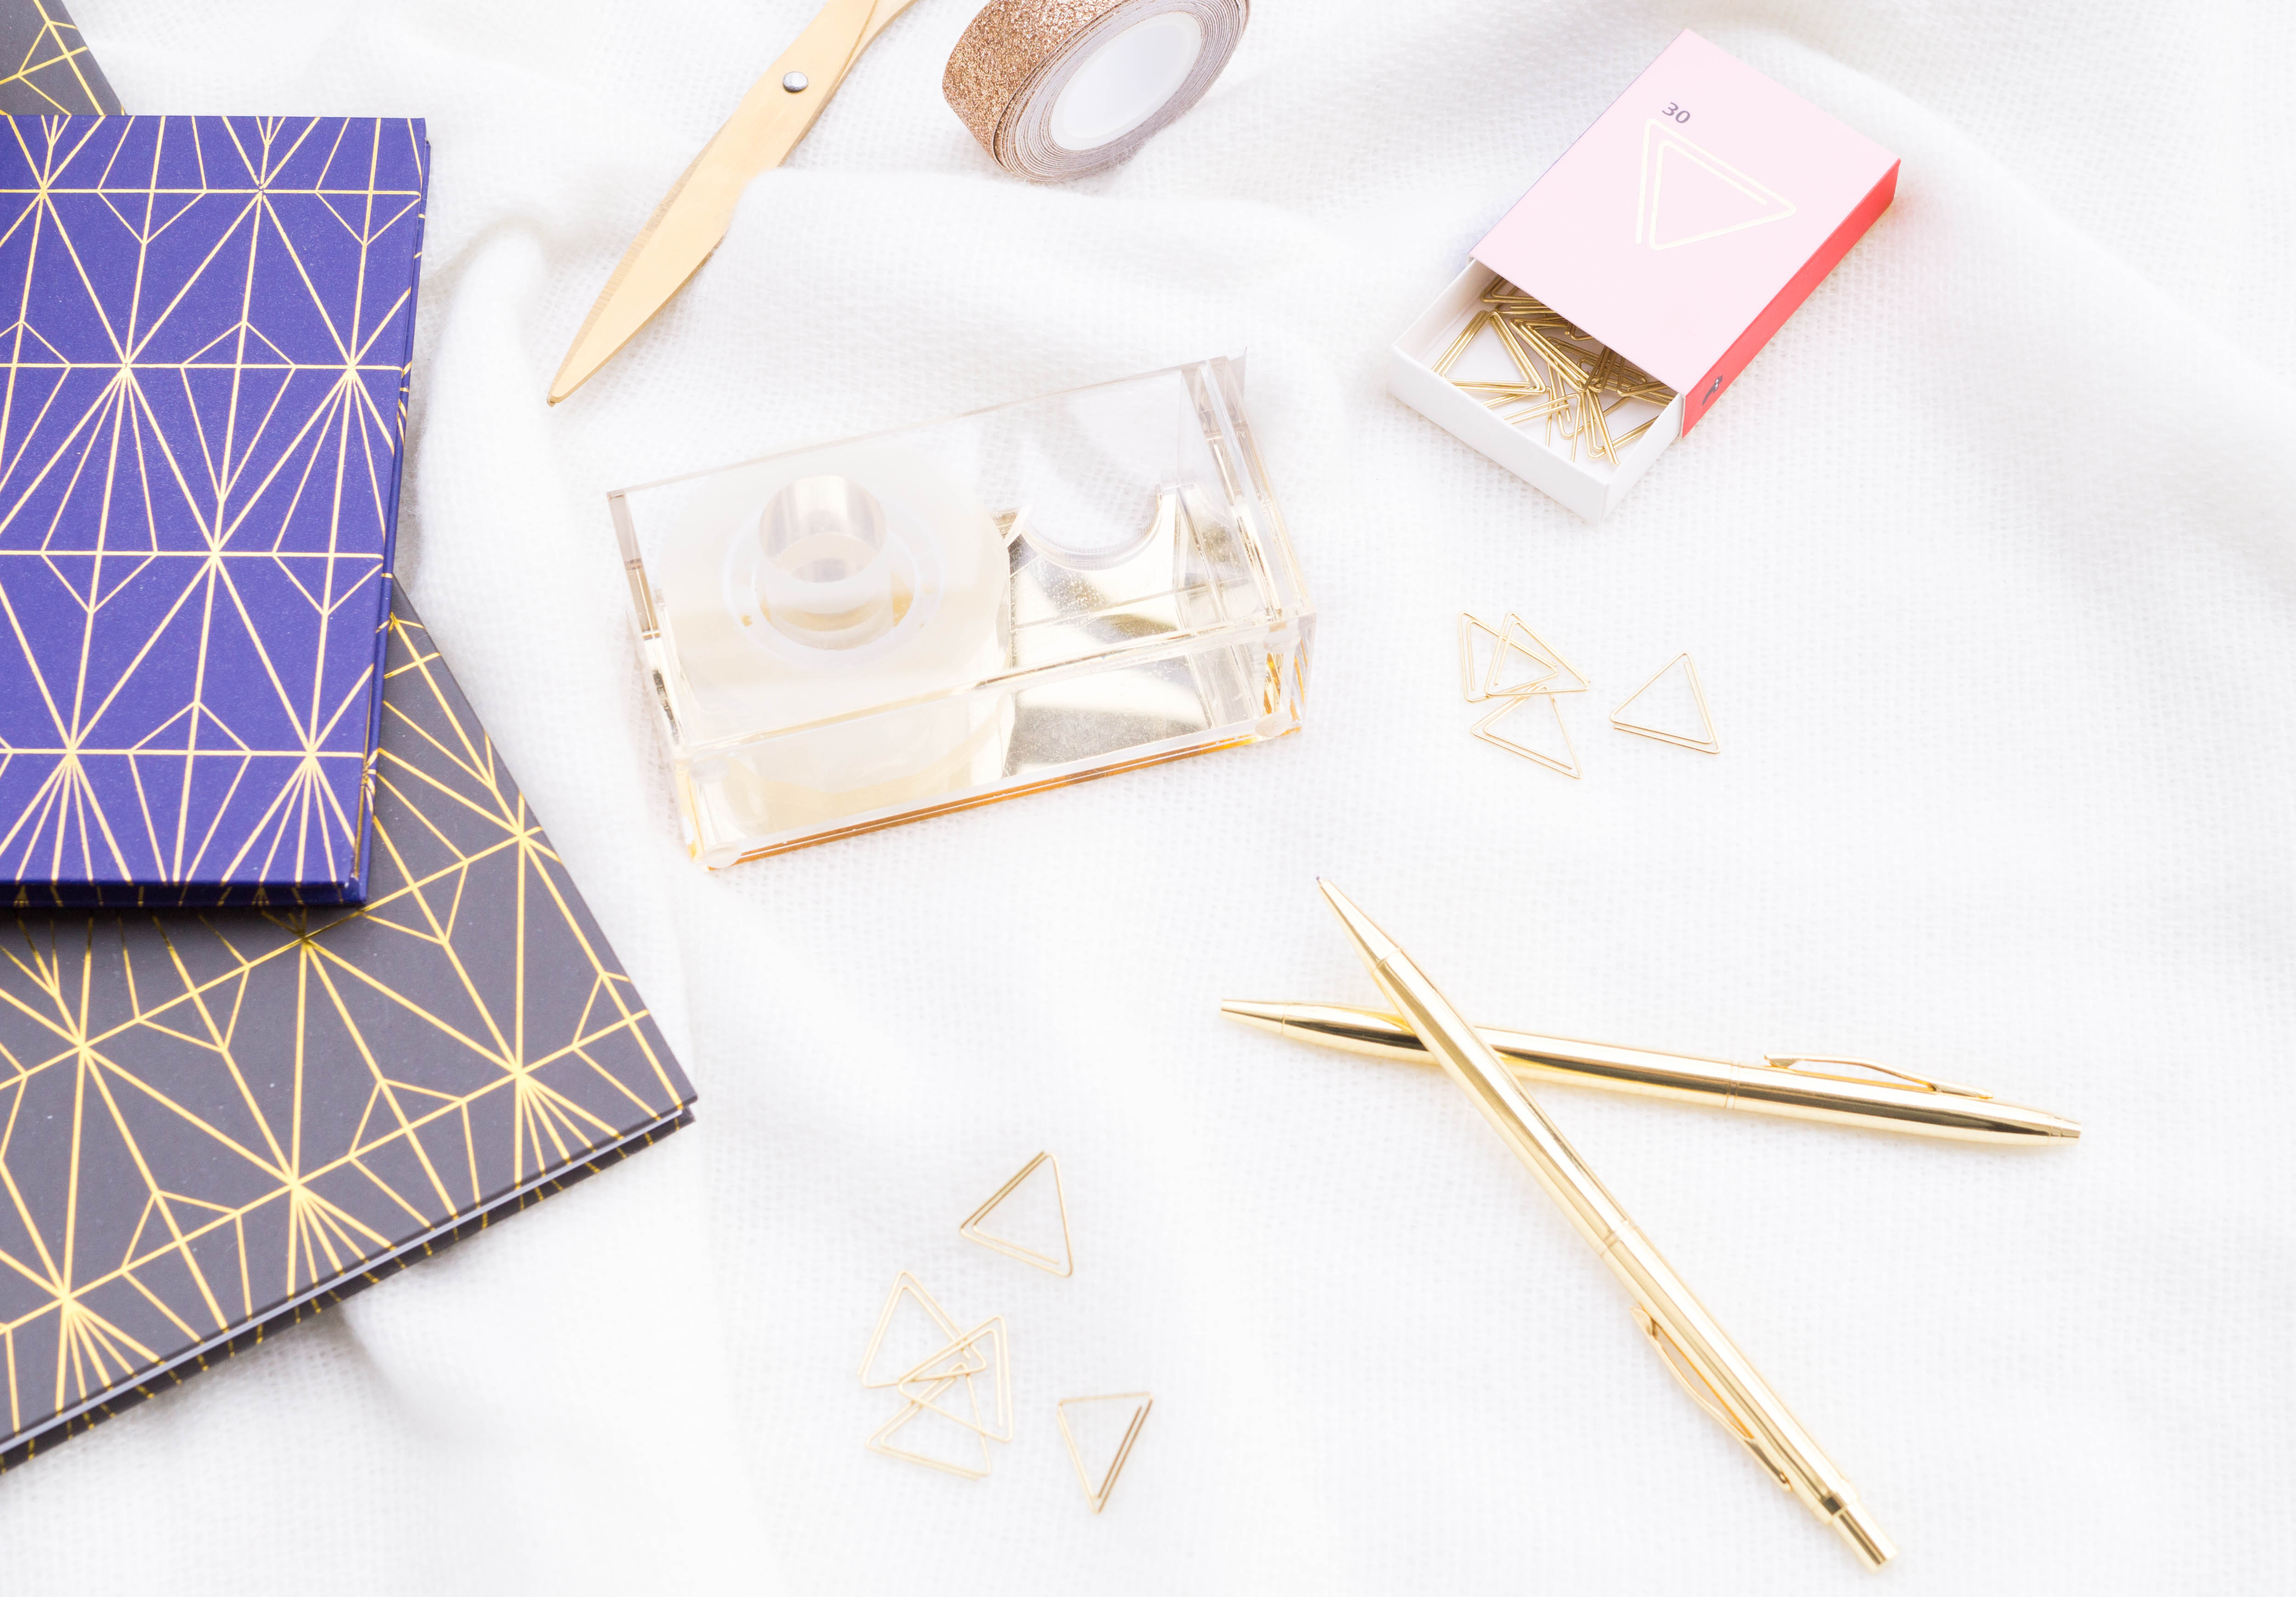 flatlay flatlays stationery schreibwaren notebooks gold scissors pens washi tape